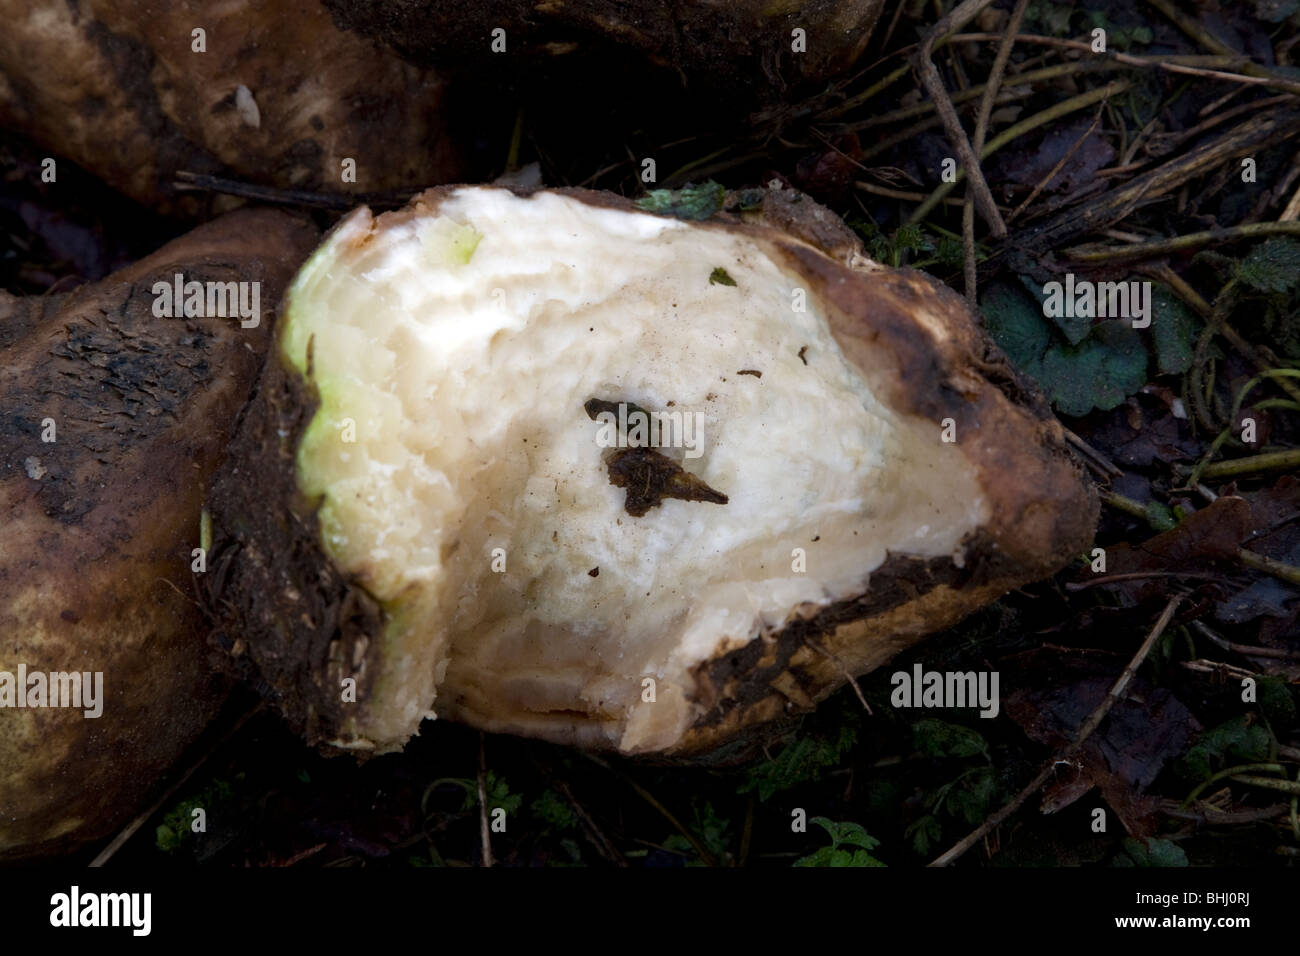 Sugar beet with teeth marks gnawed by rats and other rodents - Stock Image